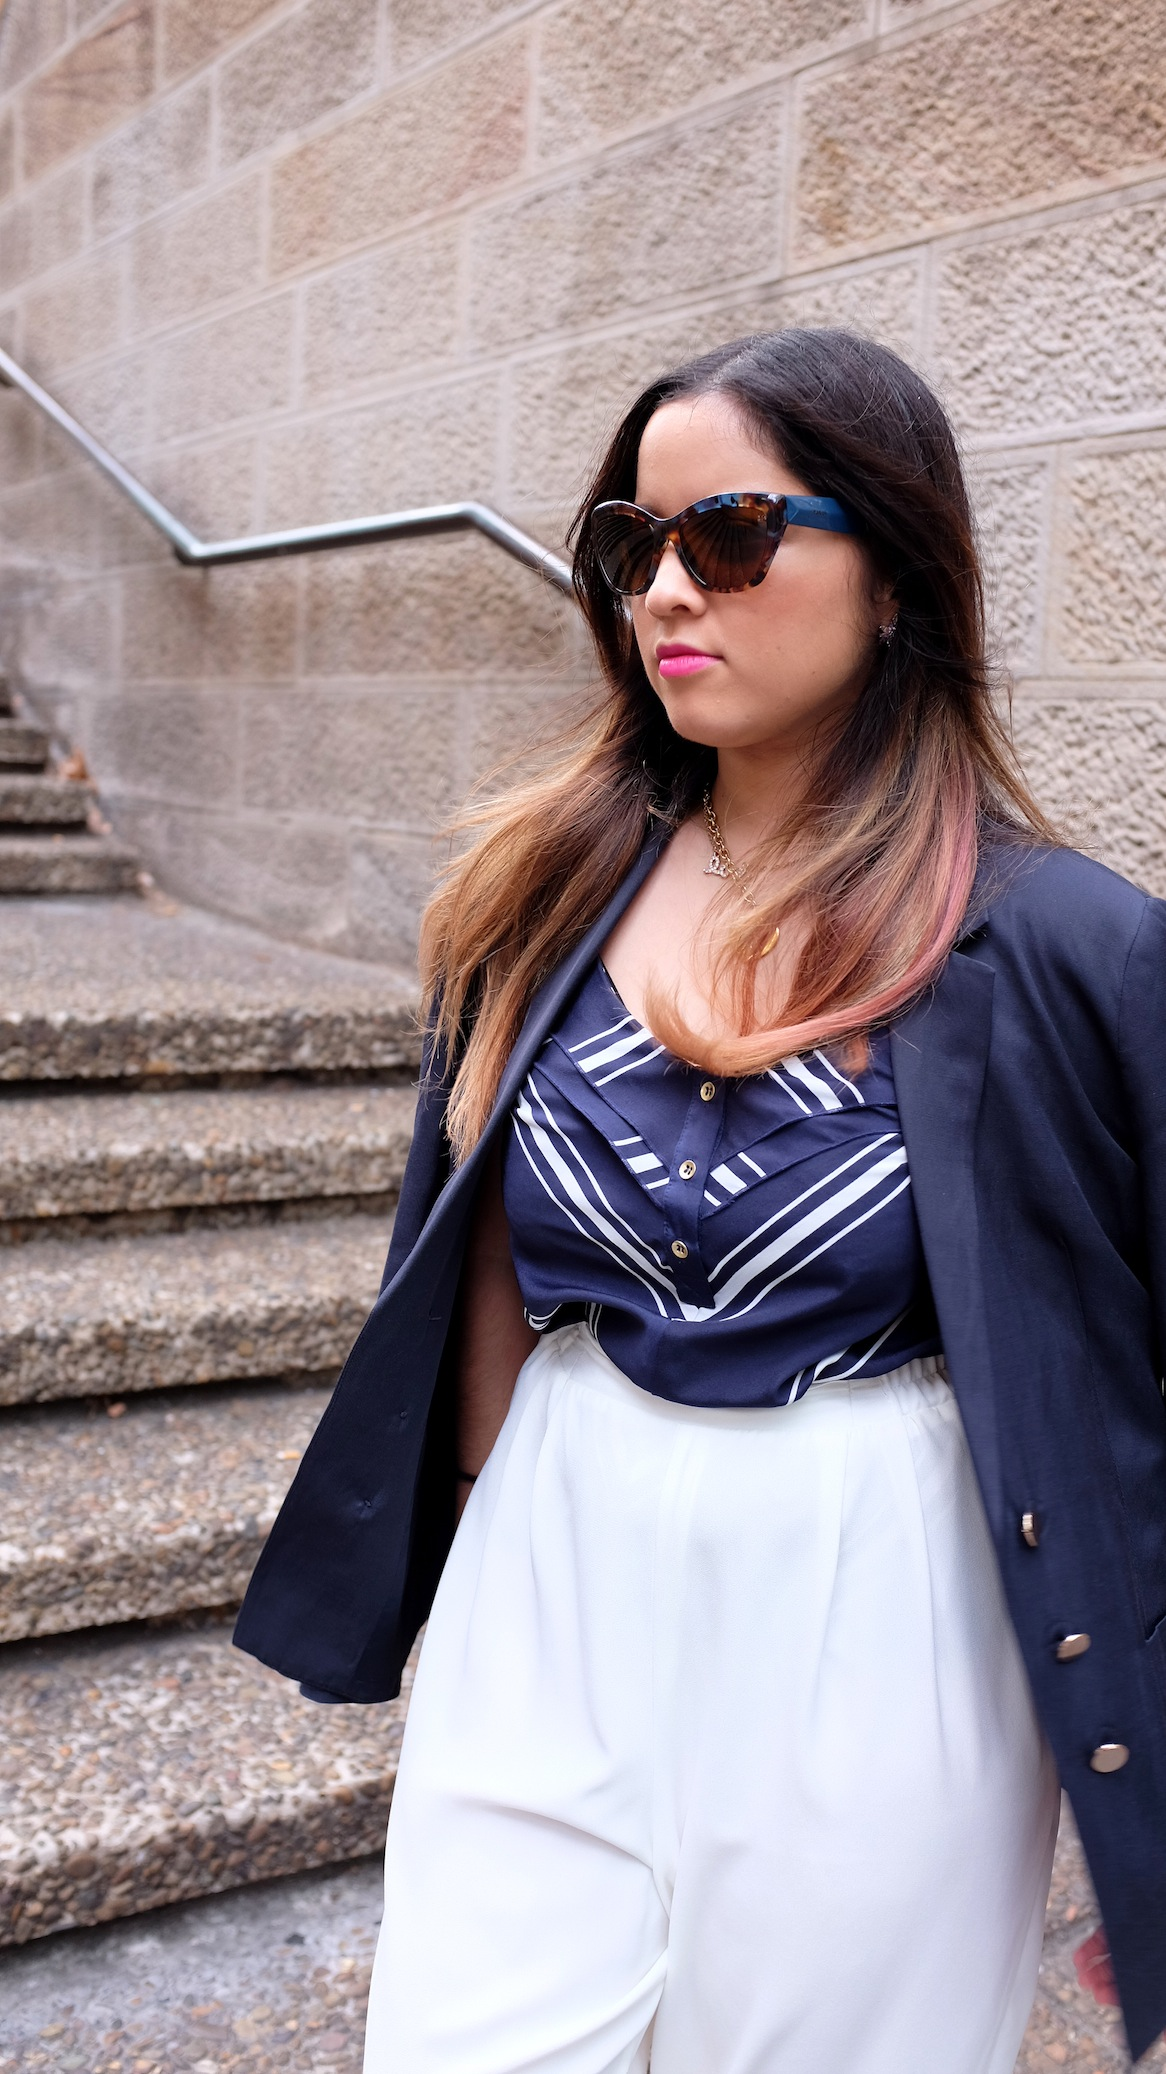 nezuki, fashion, vintage, forever new, white, navy, fashion, design, sydney, town hall, outfit, street style, slide, leopard, ocelot, lipstick, sunglasses, prada, style, blogger, photography, thrift, second hand, get the look, outfit idea, shoes, flats, makeup, hair, ombre, balayage, chic, smile, eyes